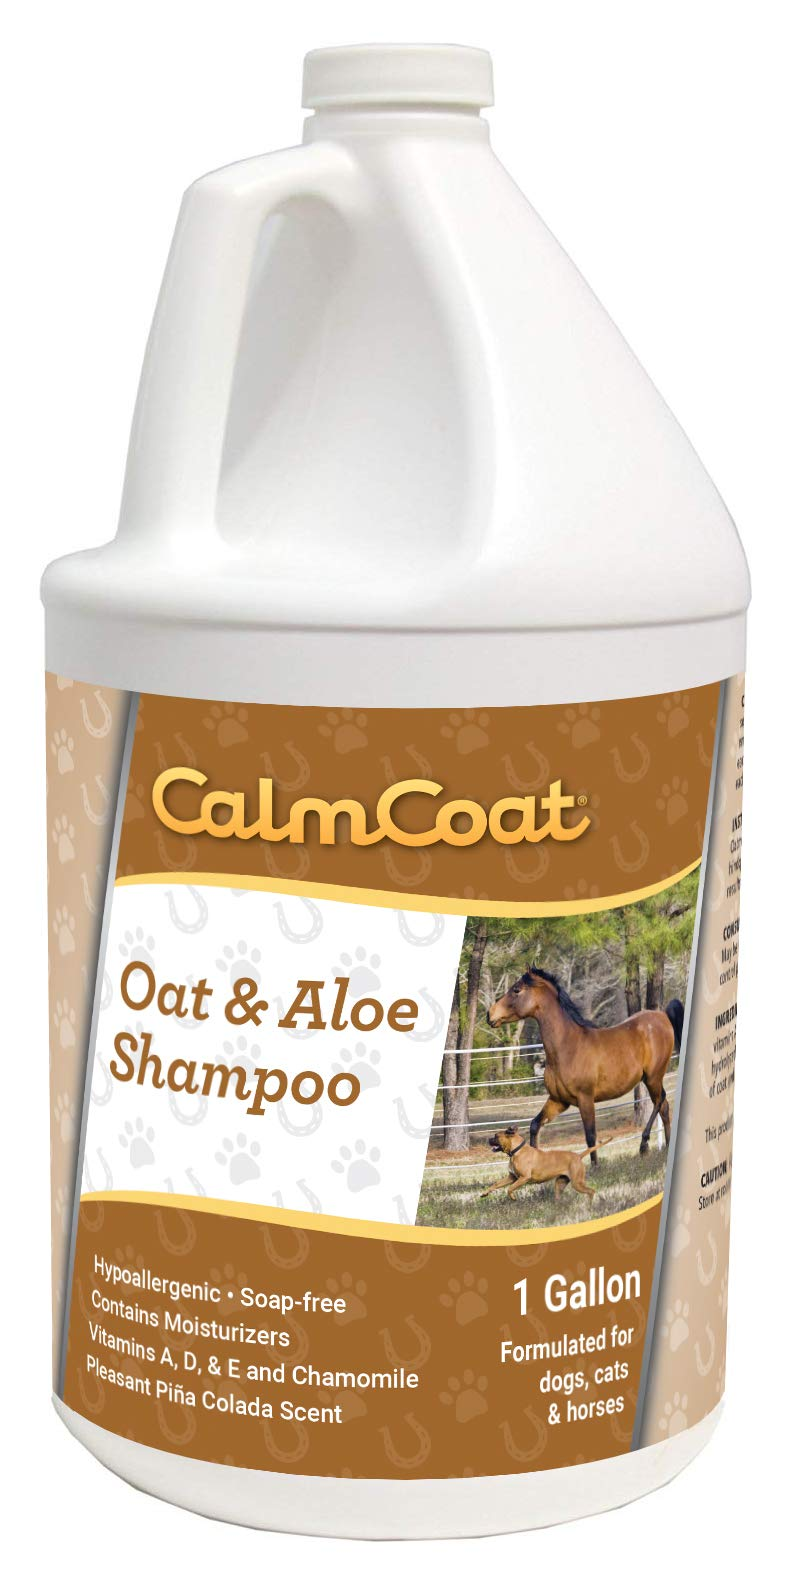 Calm Coat 7251 Oat & Aloe Shampoo, 1 Gallon by Calm Coat